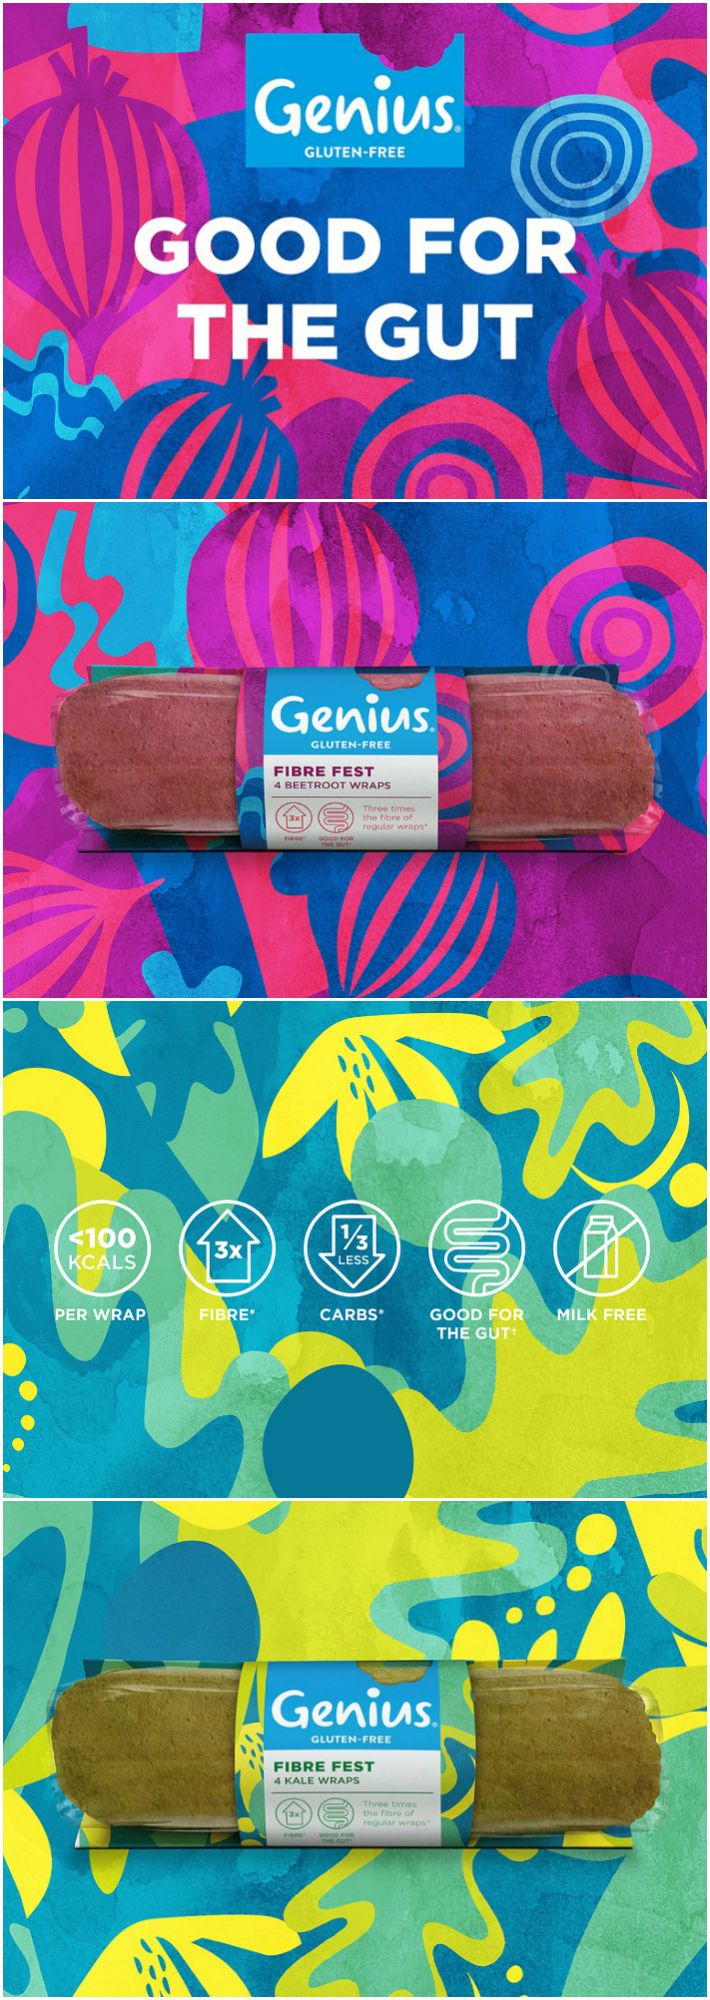 Dynamic Identity for New Genius 'Good for the Gut' Range